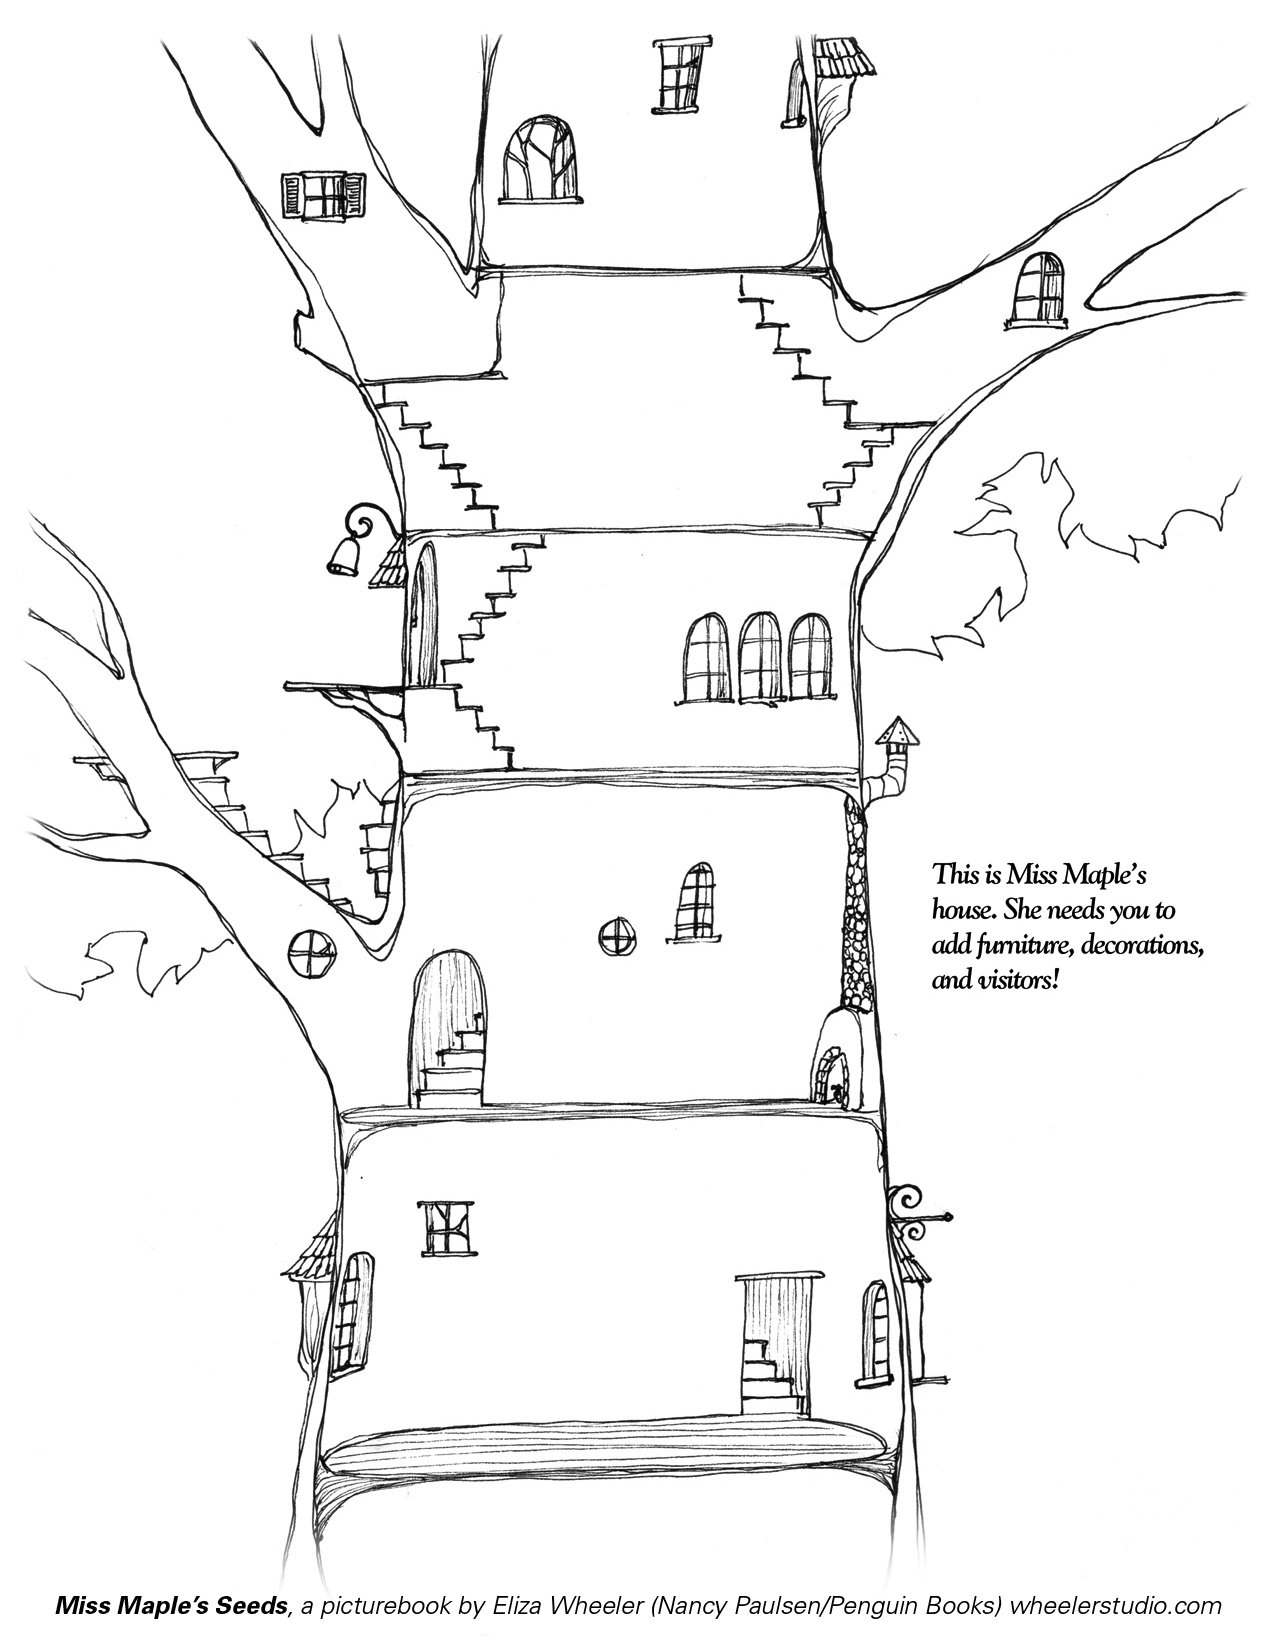 Magic tree house coloring pages to download and print for free